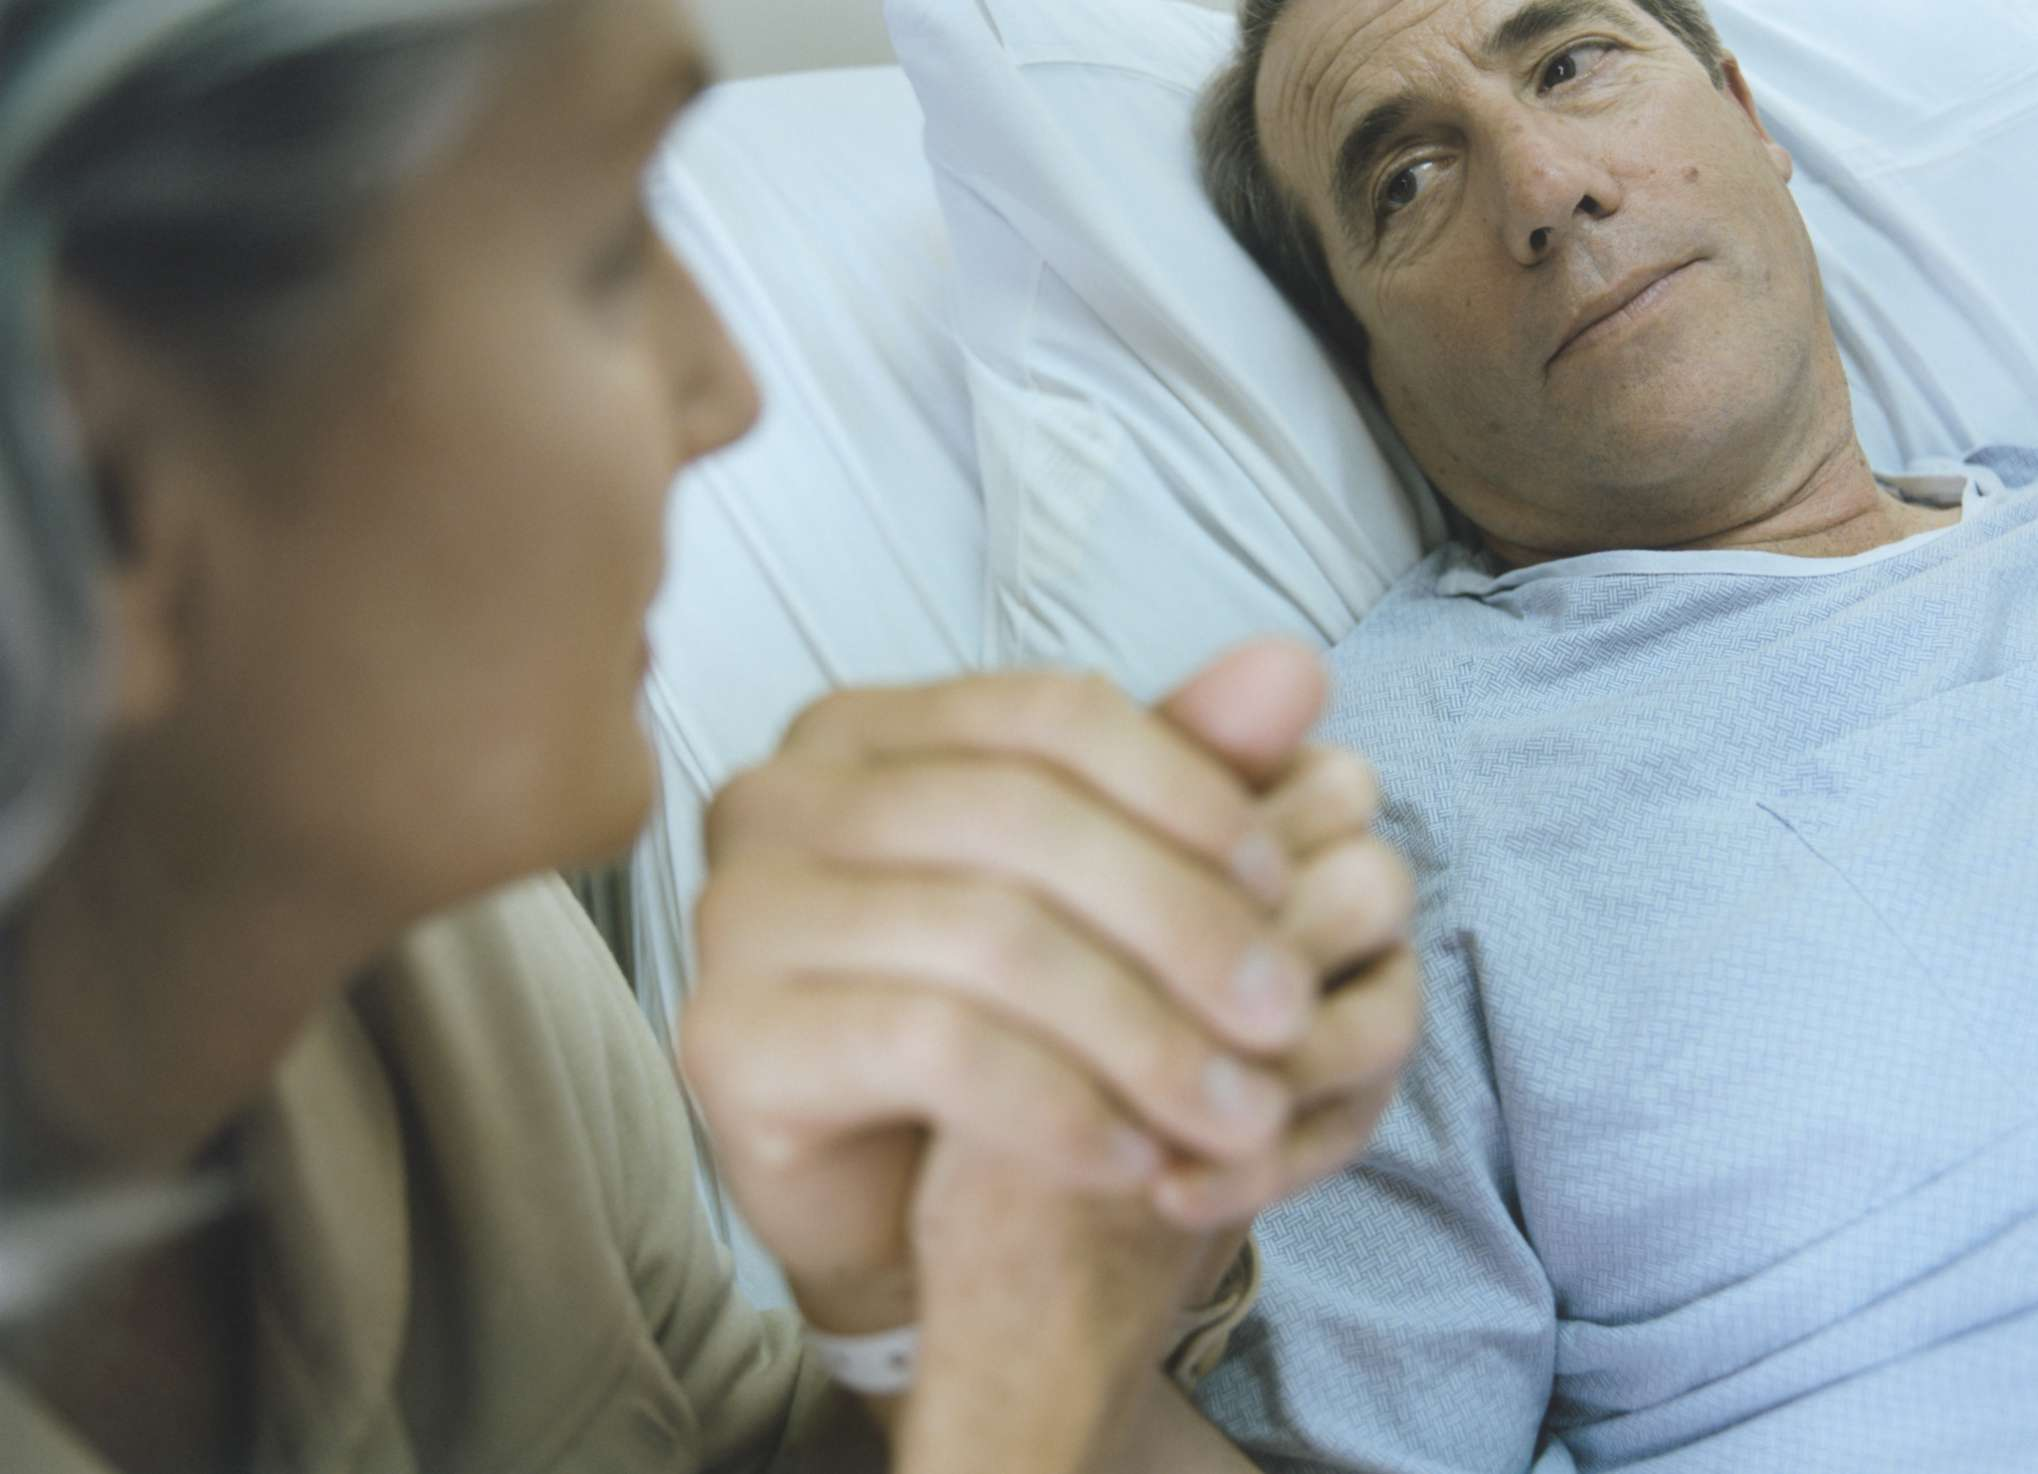 man in hospital bed holding wife's hand